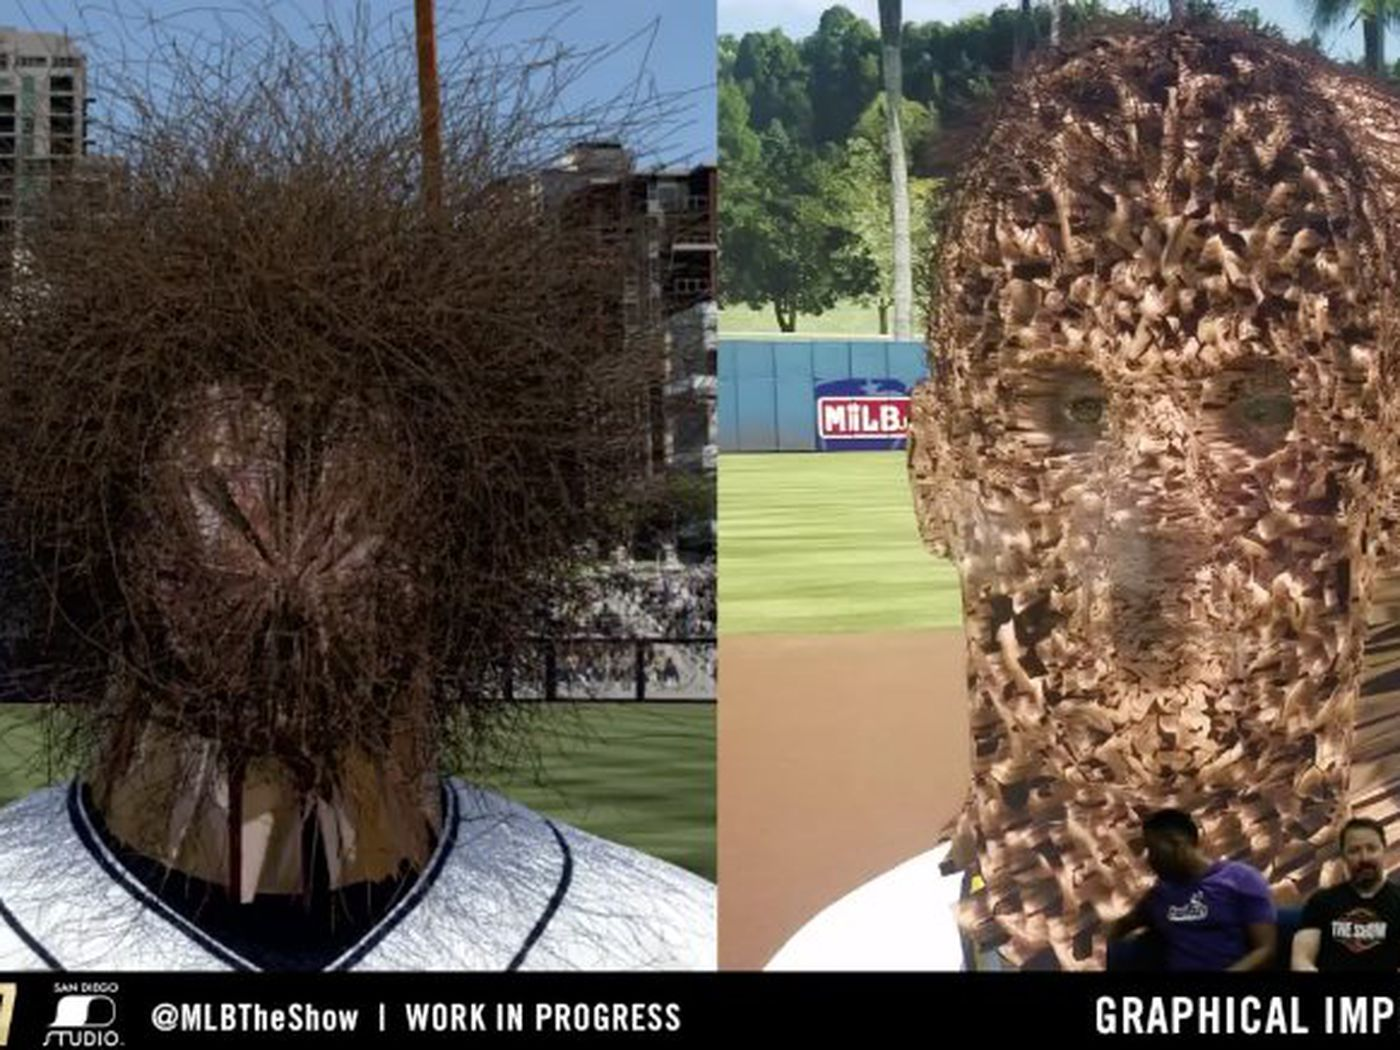 This Mlb The Show Bug Is Legitimately Horrifying To Look At